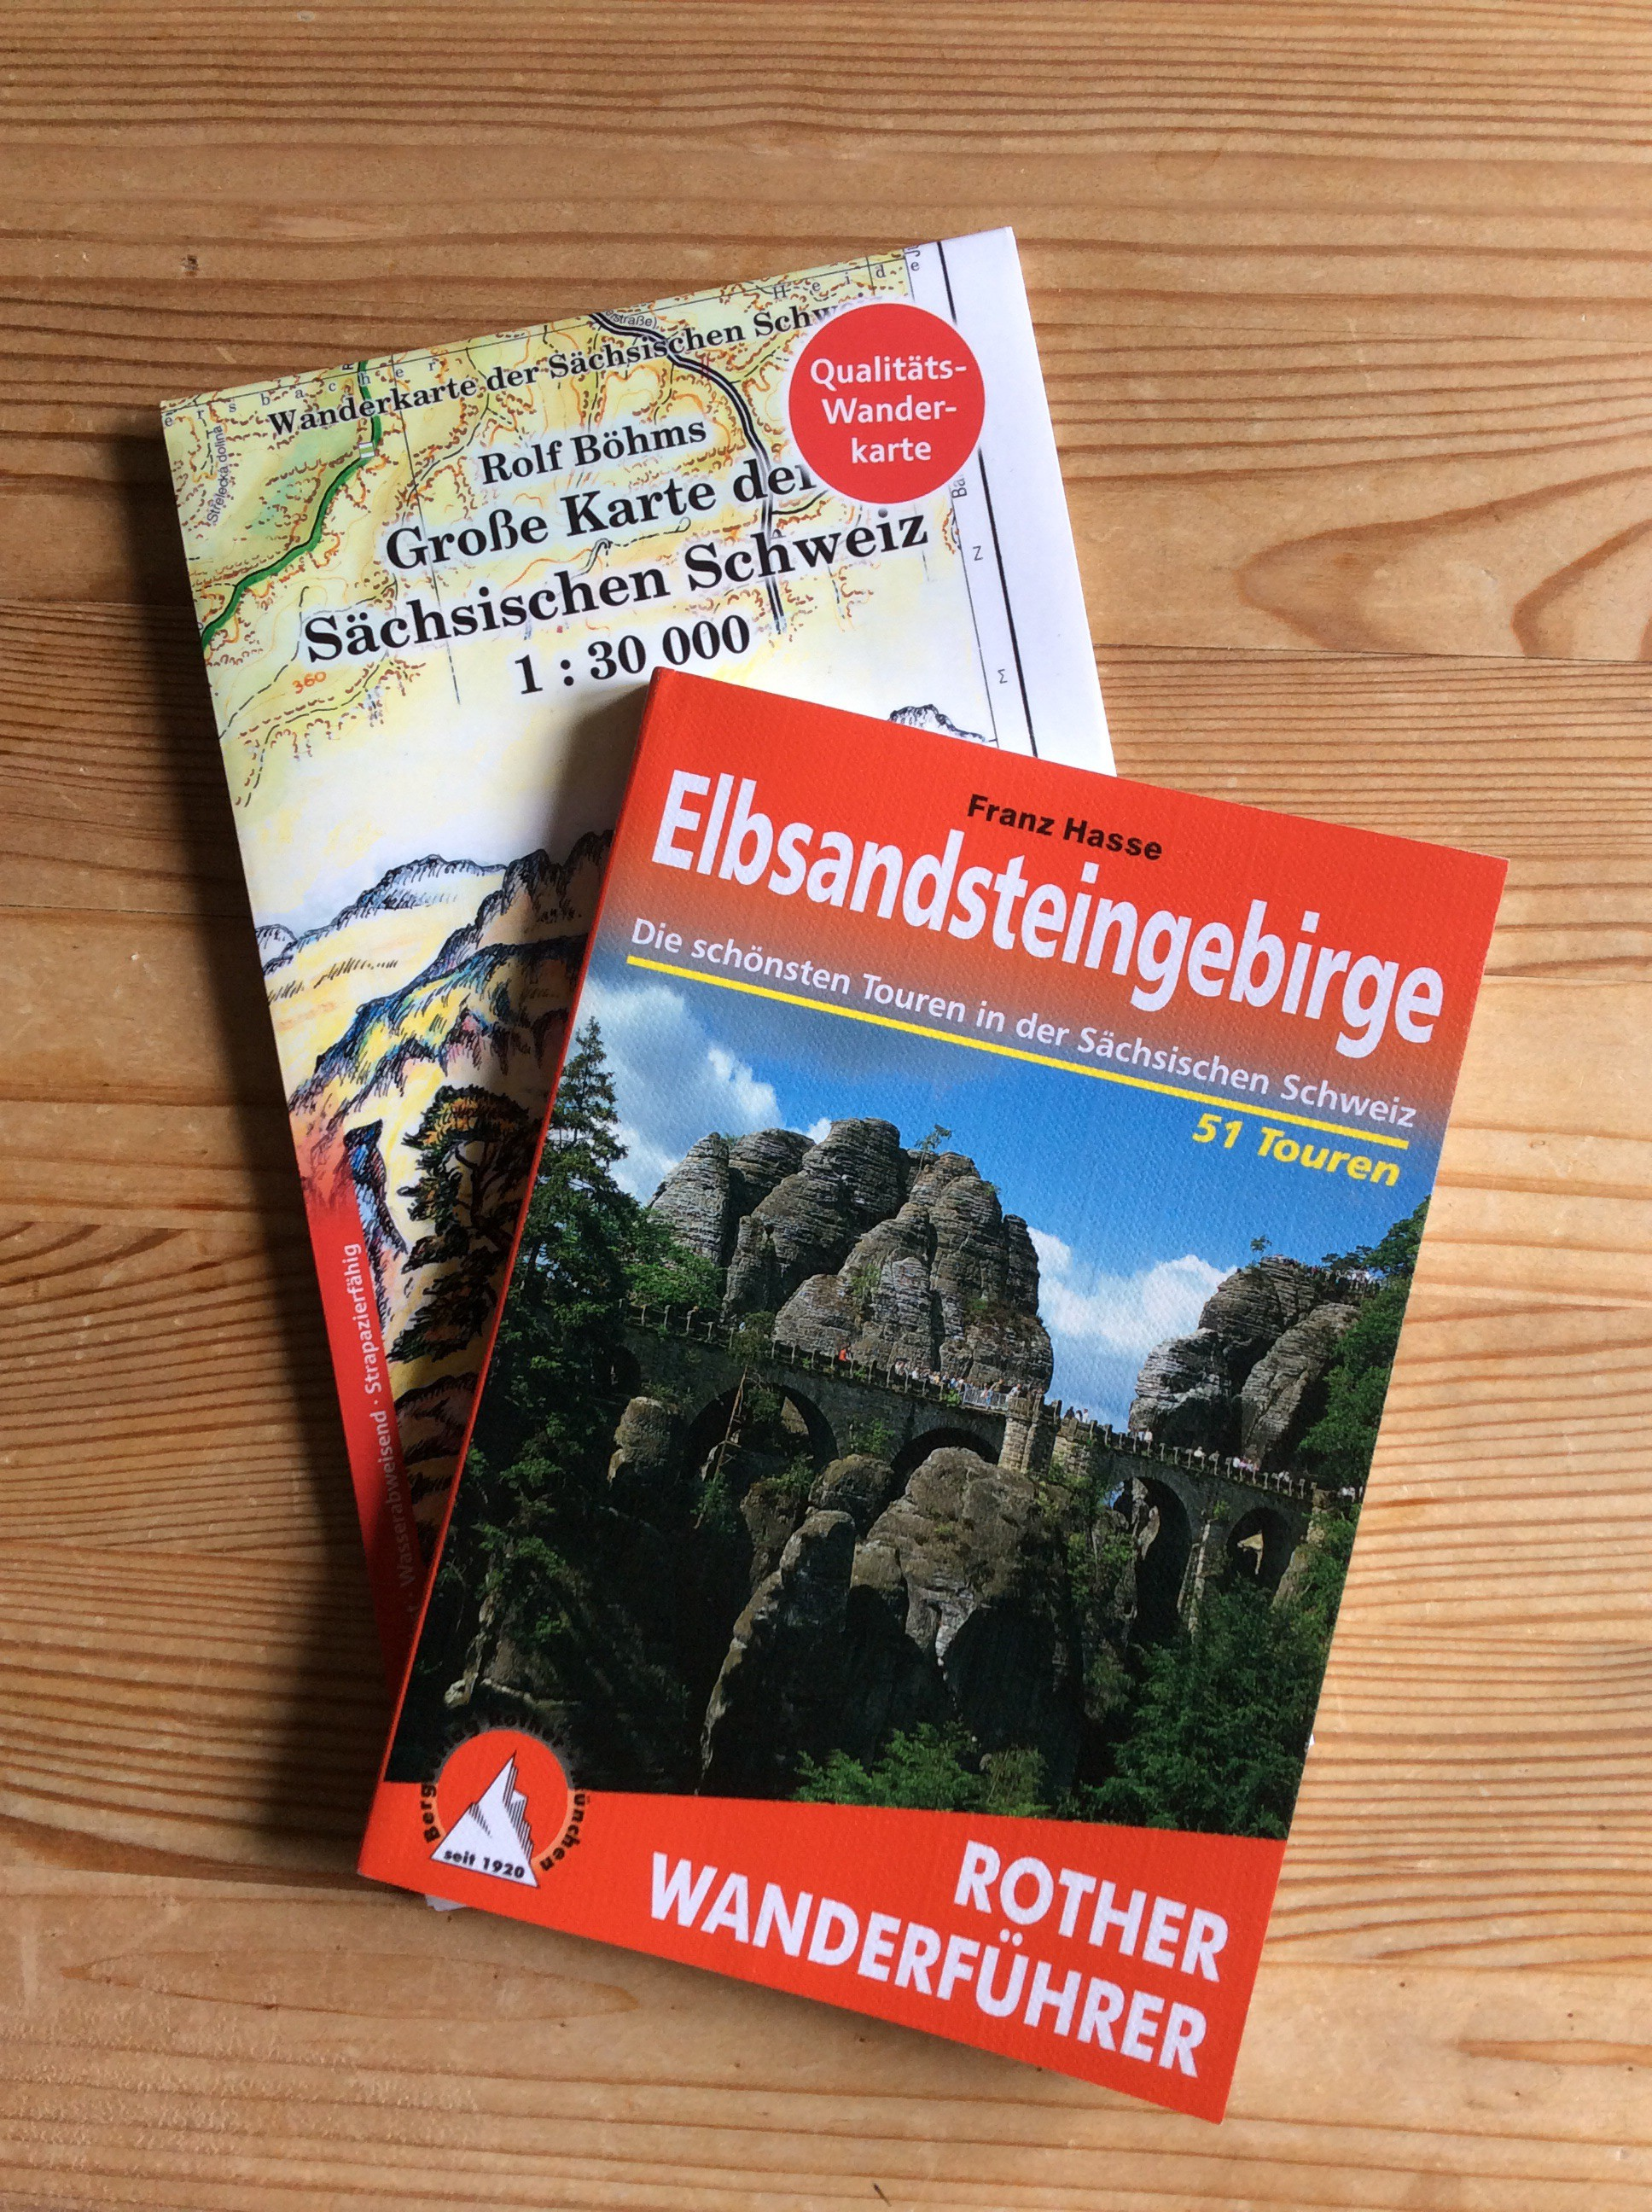 Elbsandstein is calling…